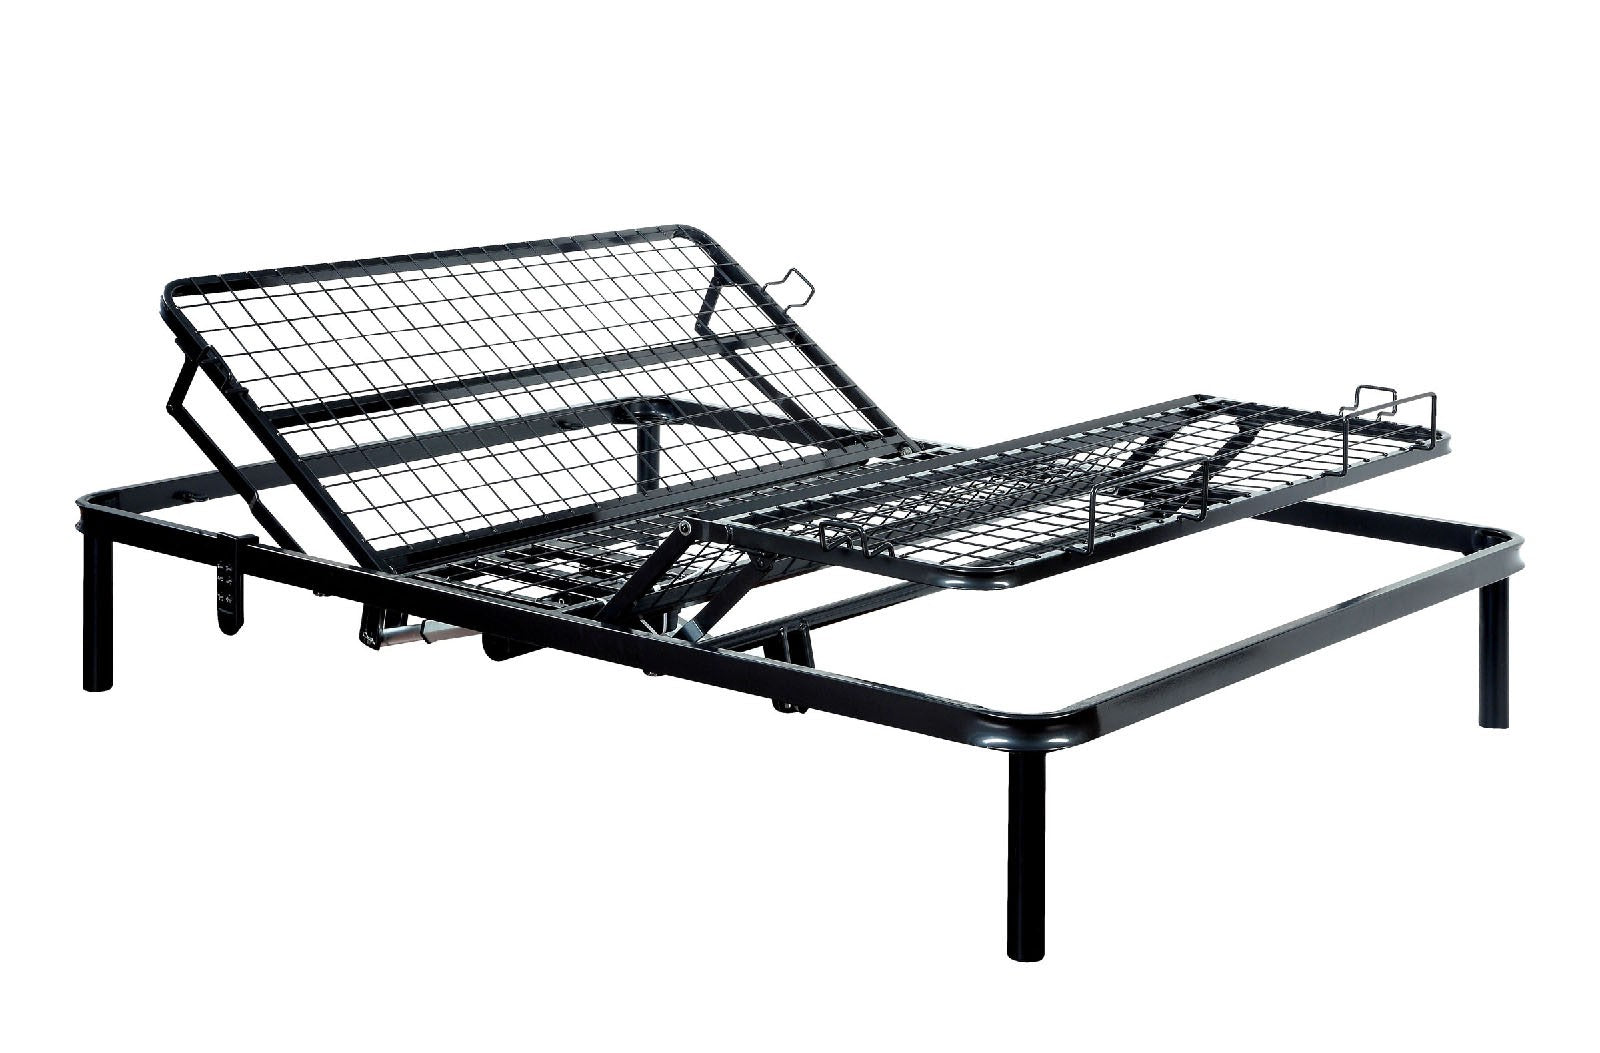 Standard King Adjustable Bed Frame W/ Remote